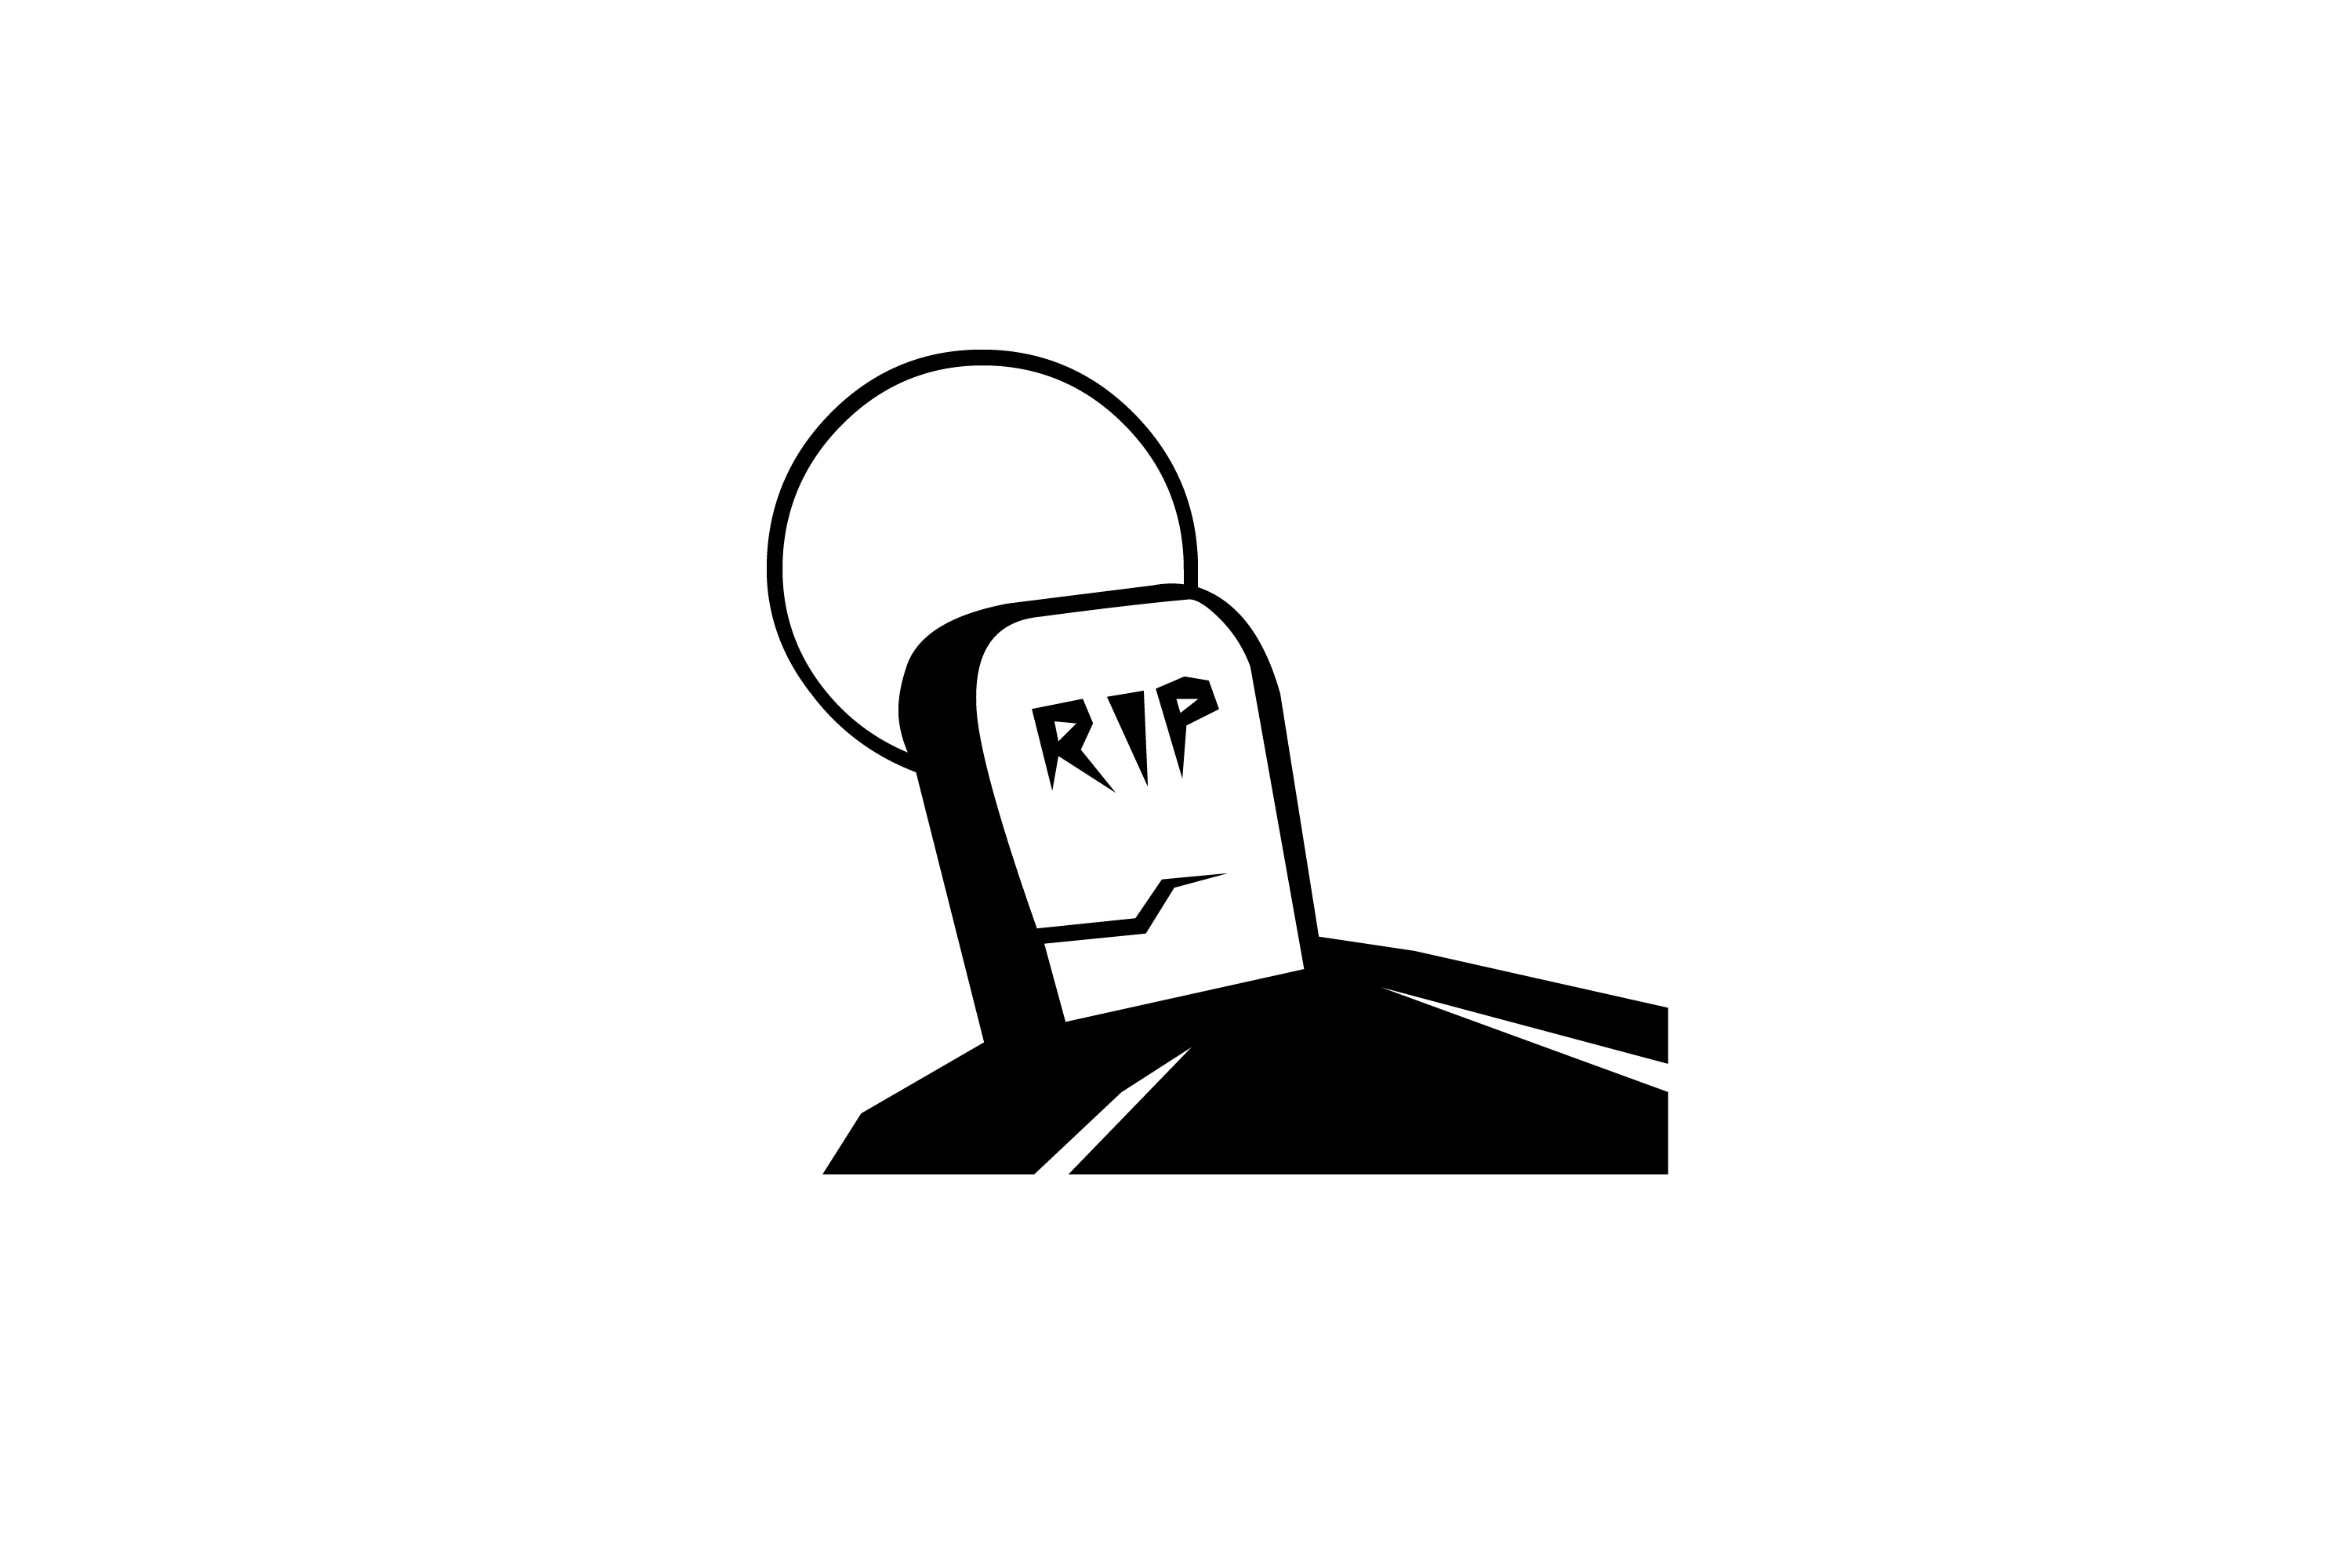 3000x2000 Image Of Rip Headstone Creepyhalloweenimages